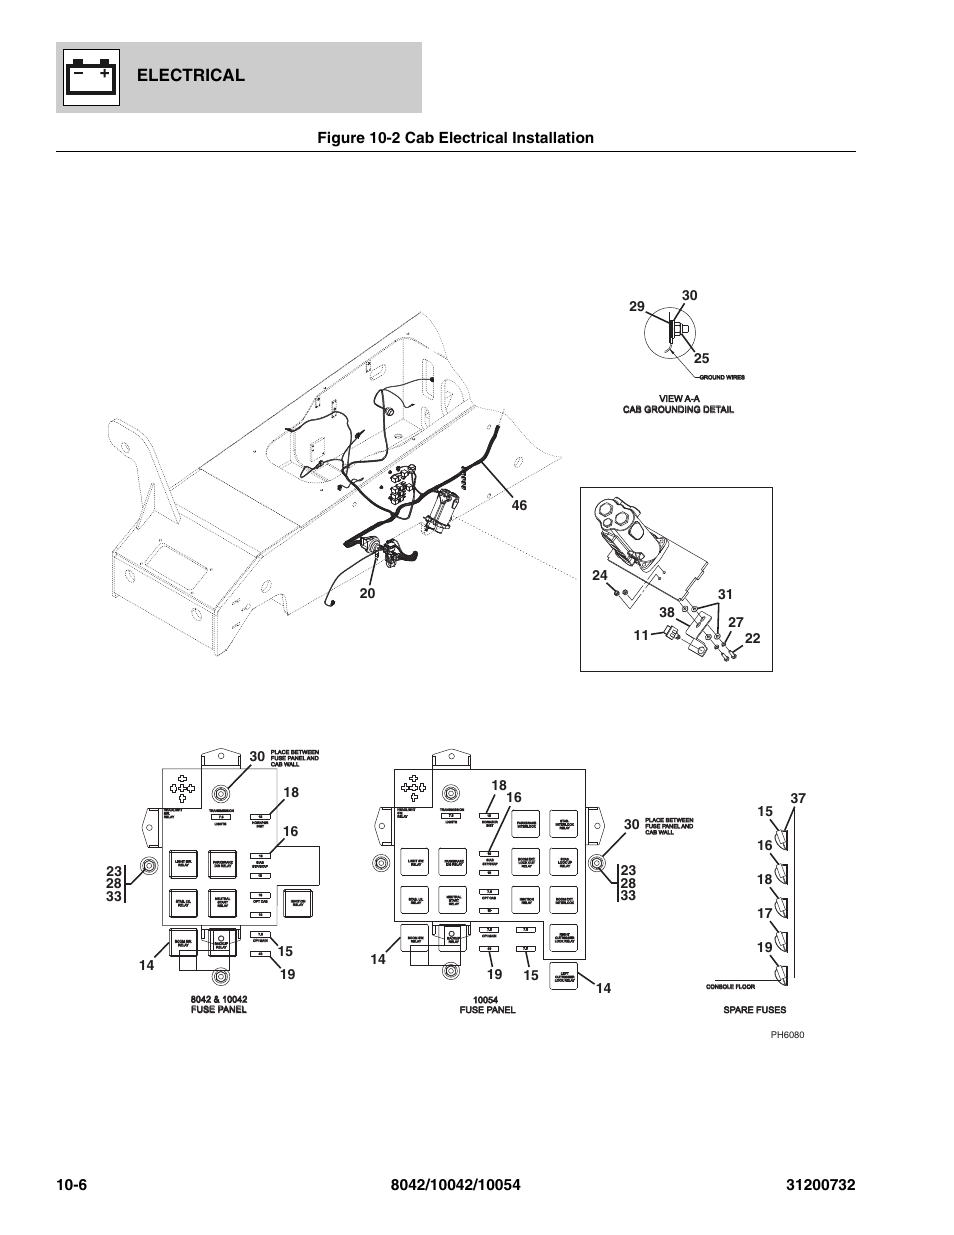 Telsta Wiring Schematic Electrical Schematics Auto Toyota Harness Connector 11428 Skytrak Scissor Lift Diagram Brakes